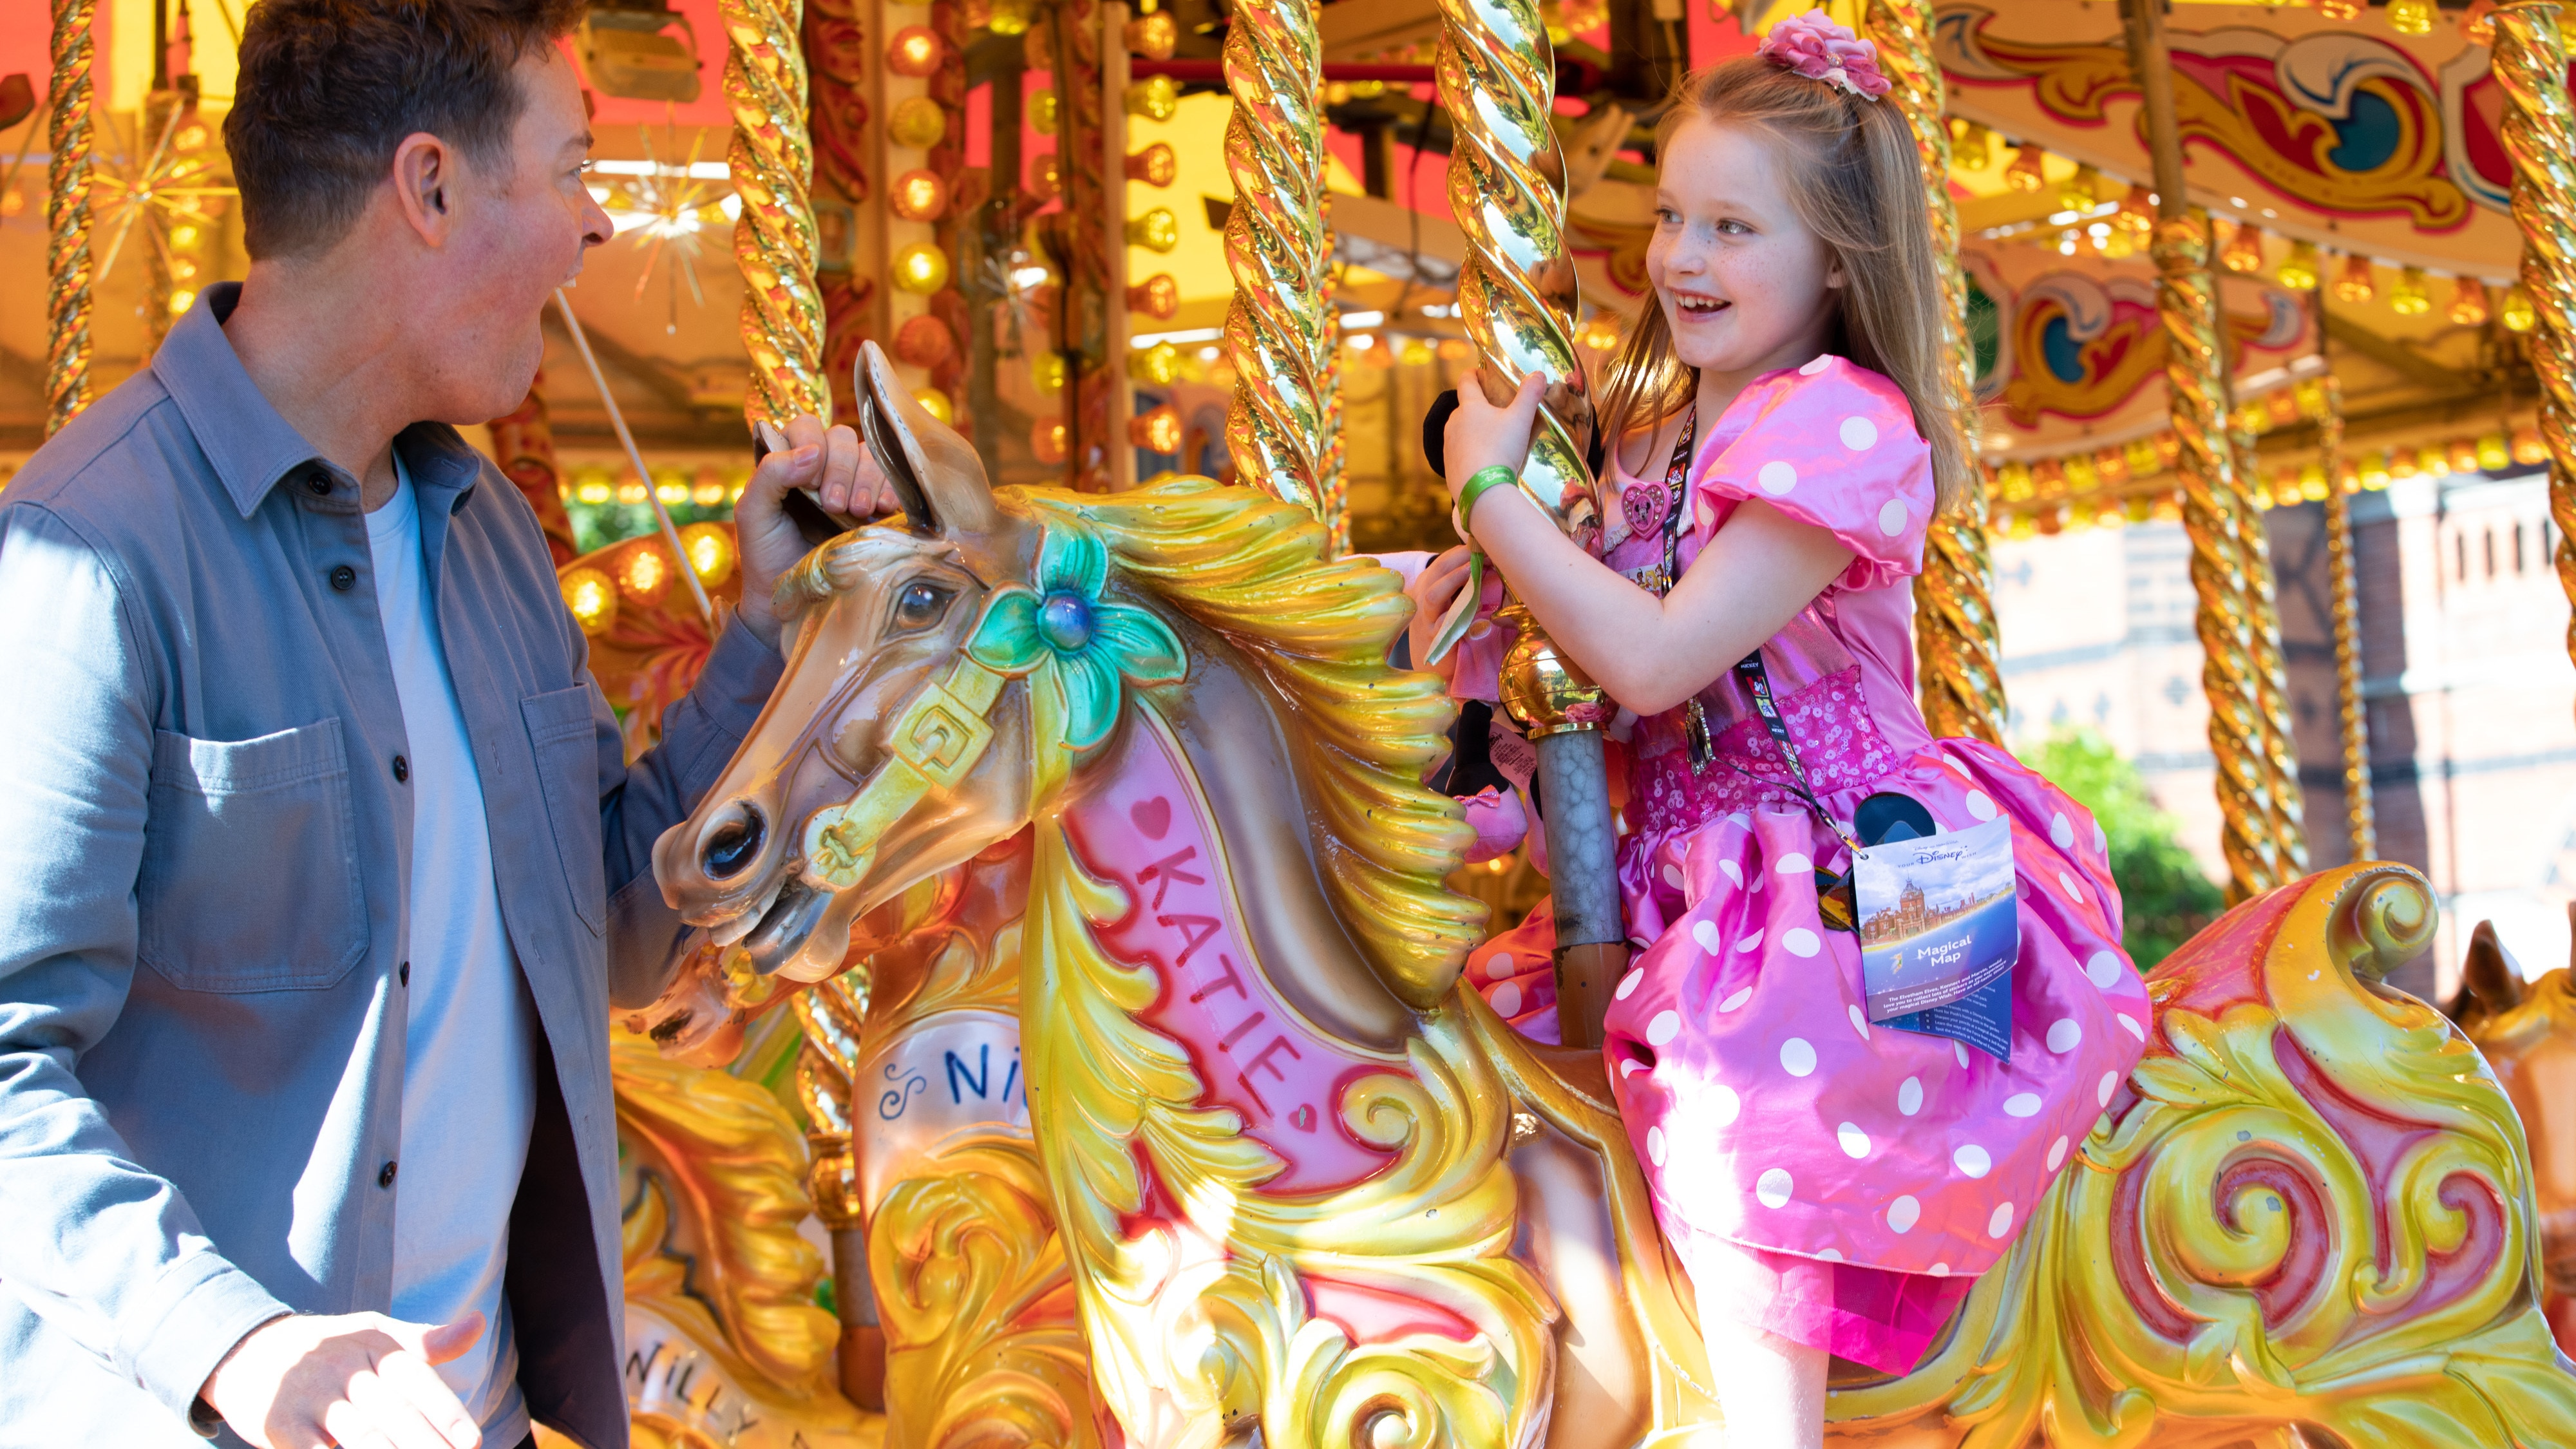 Girl riding the carousel looking at Stephen Mulhern